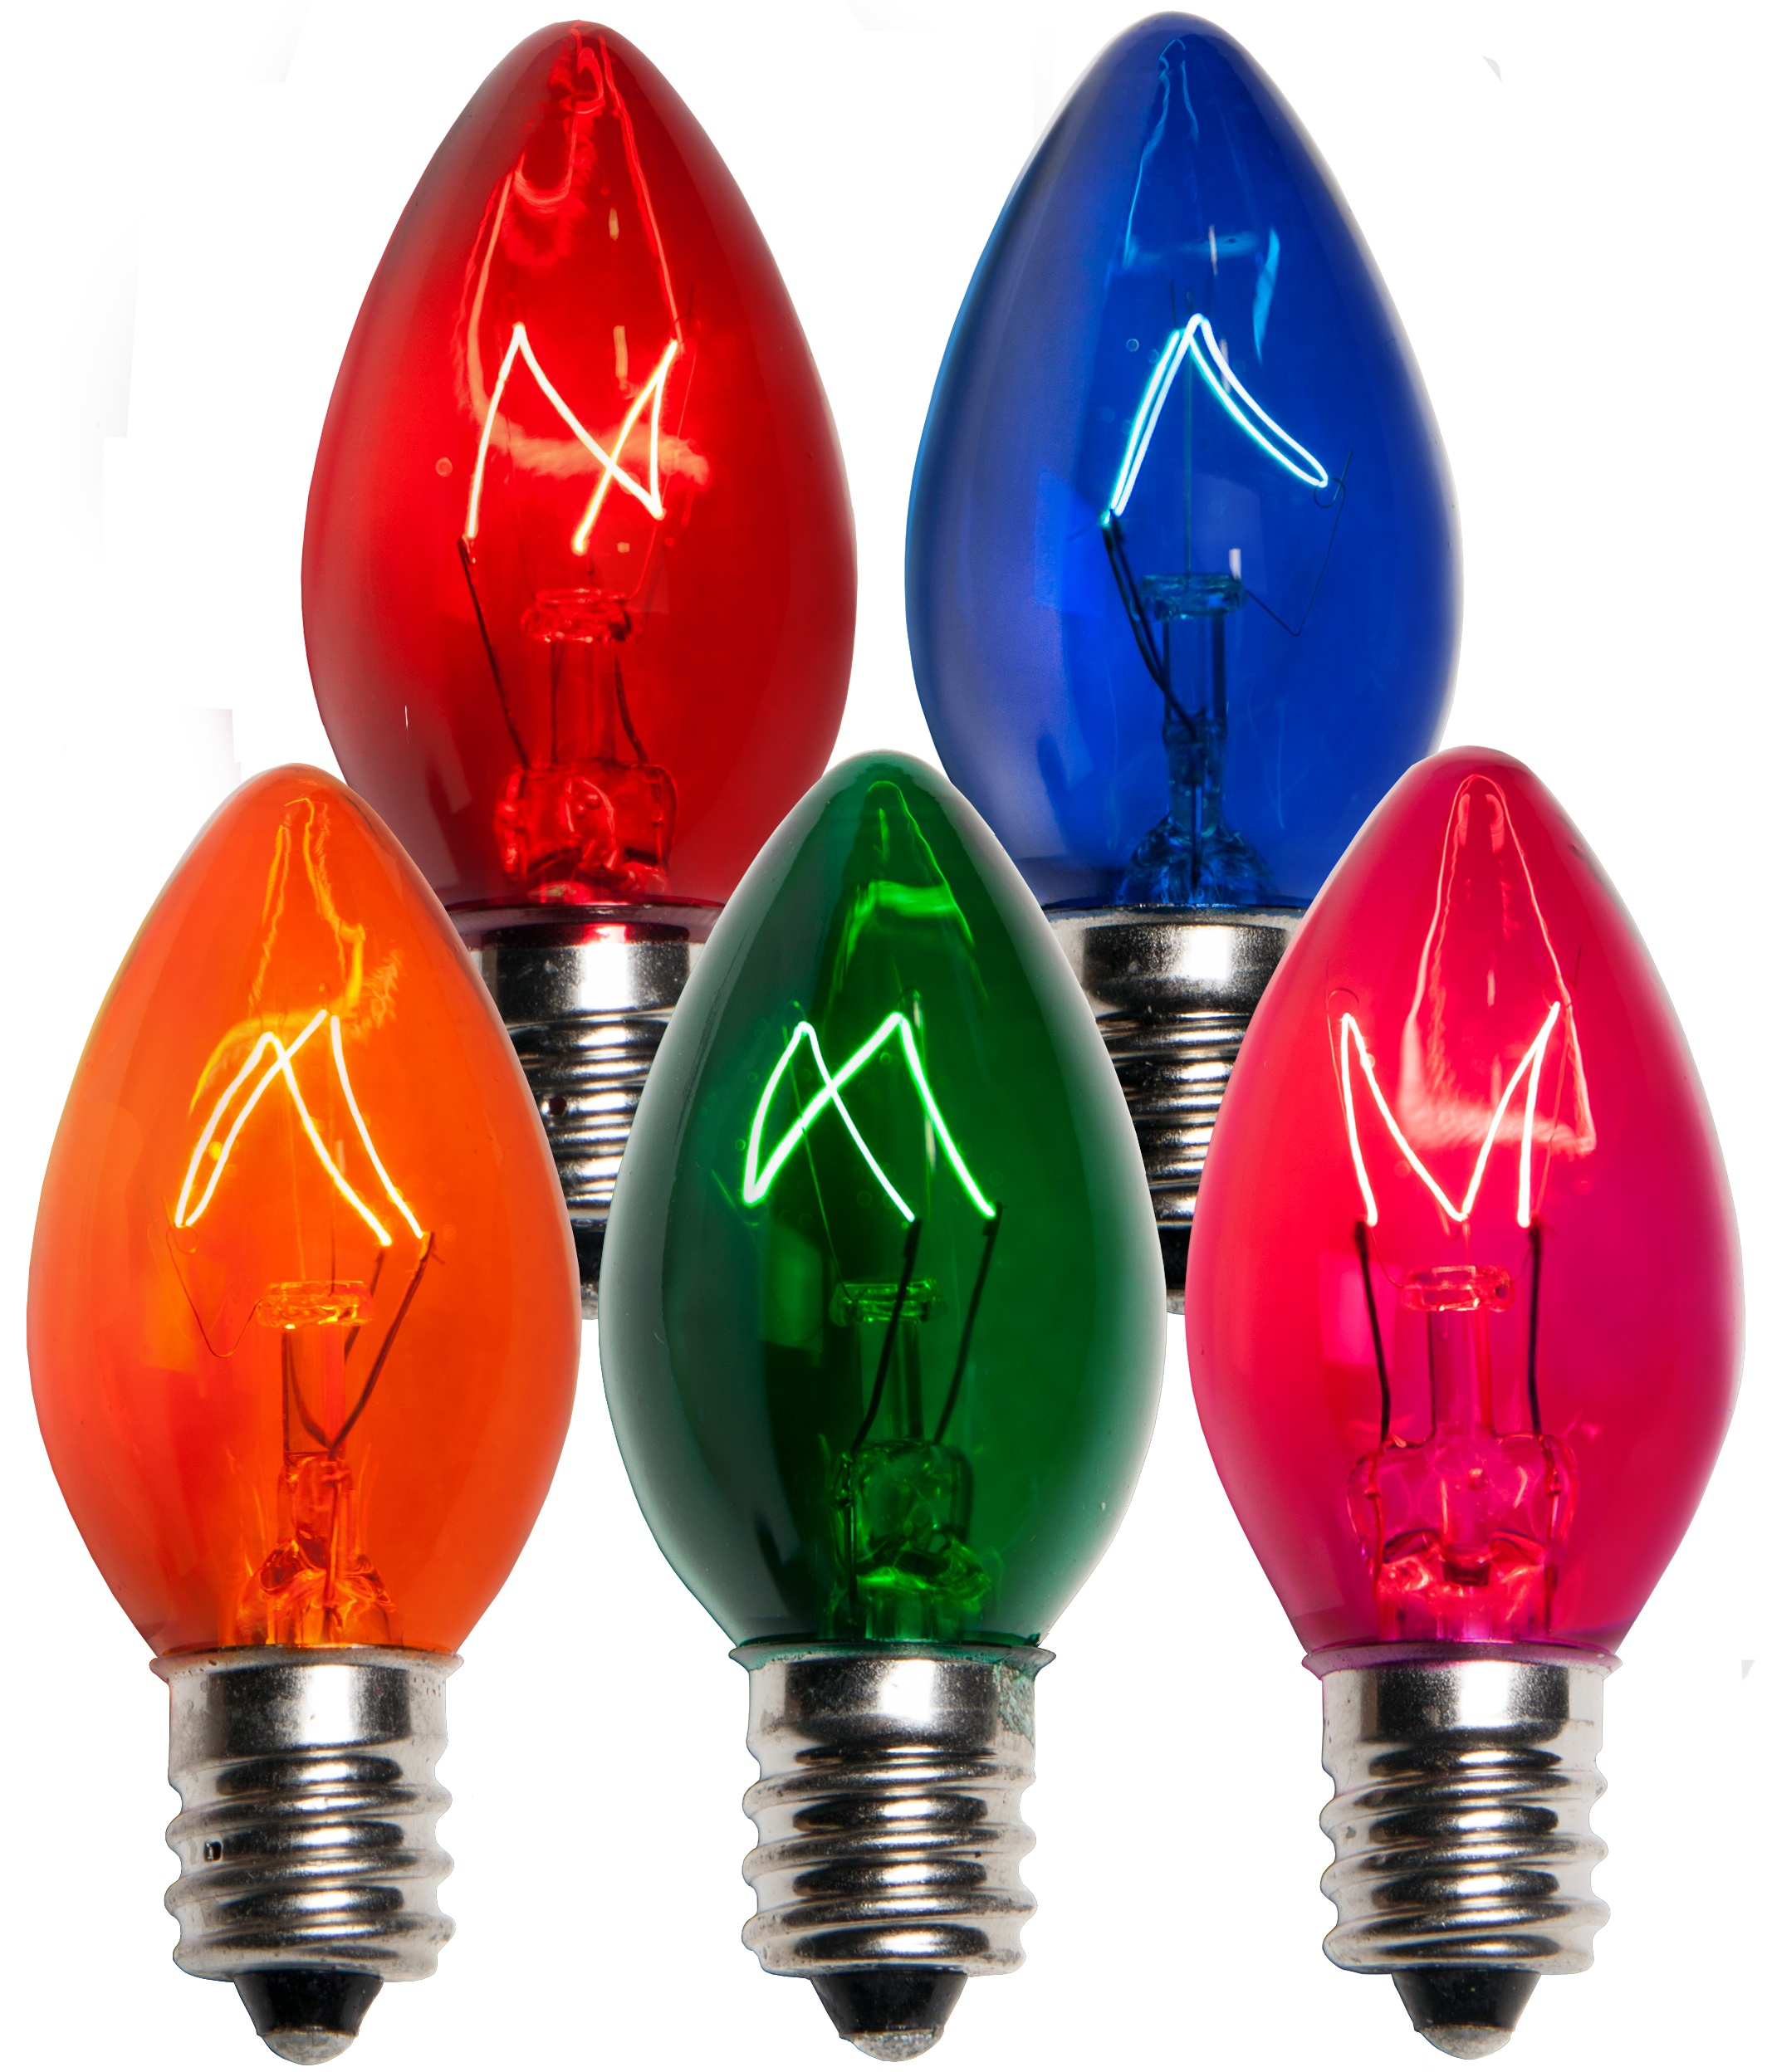 C7 Christmas Light Bulb C7 Multicolor Christmas Light